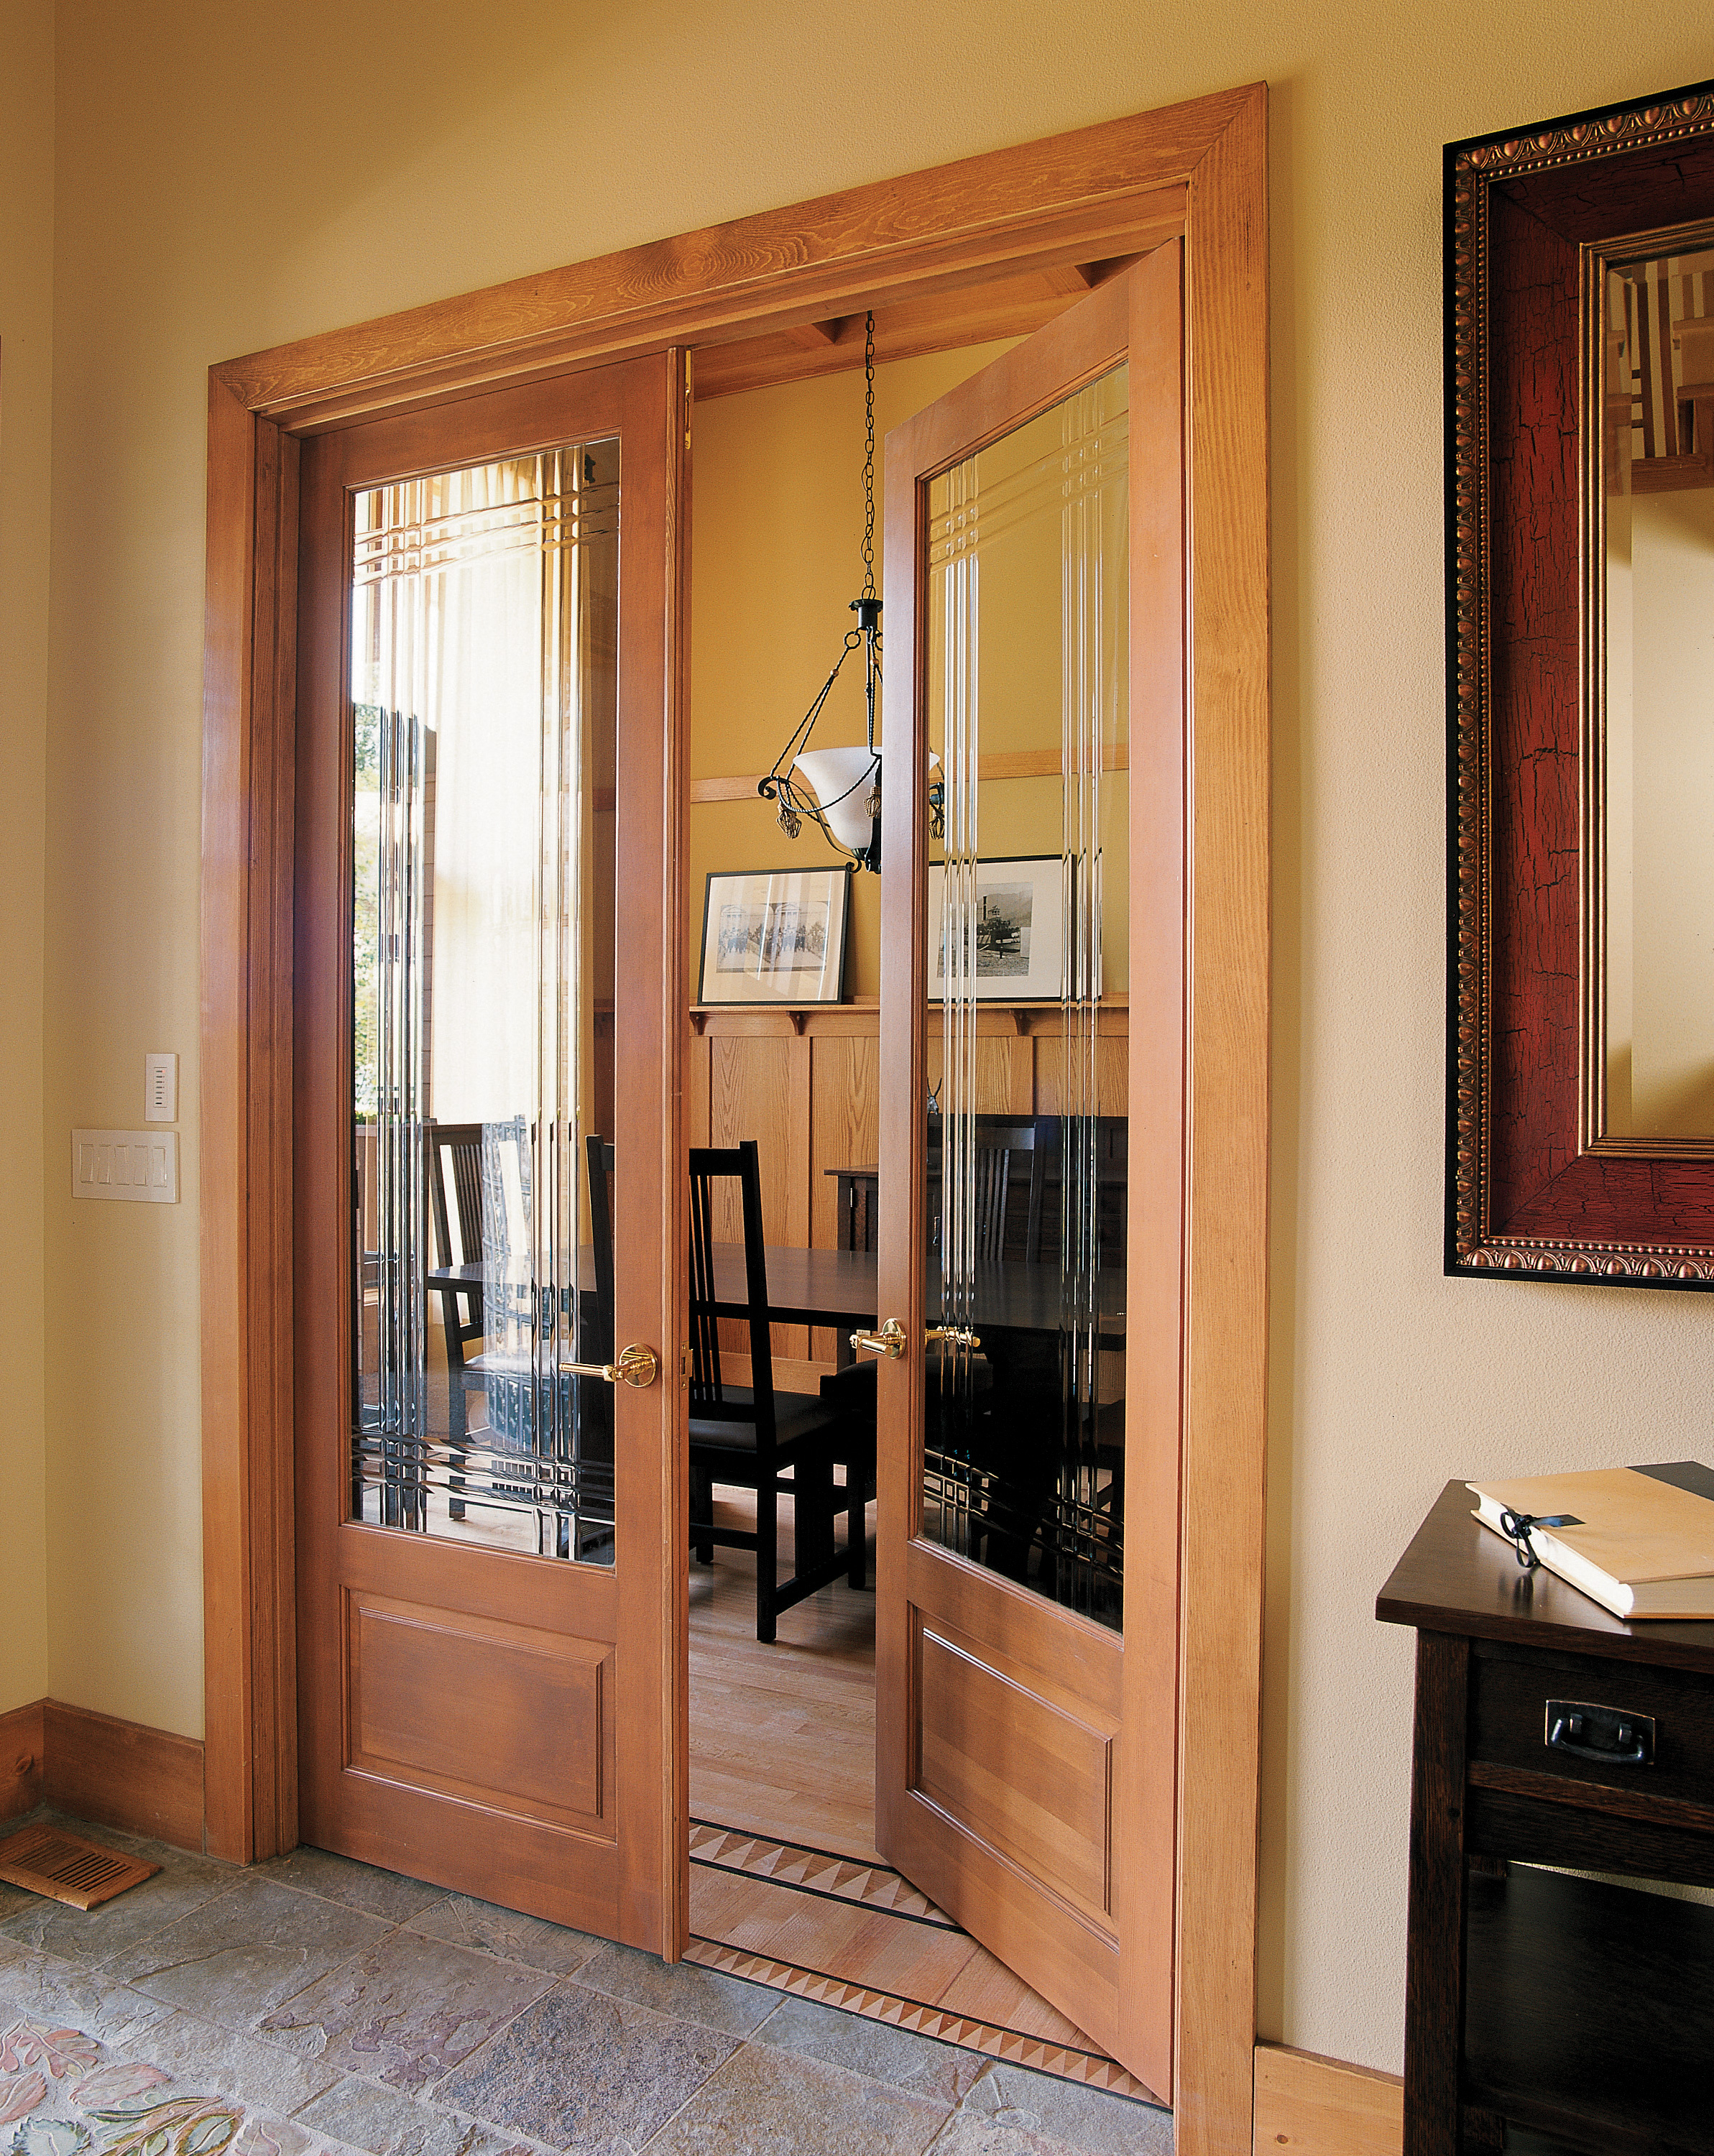 Awe Inspiring Simpson Now Offering 10 Year Warranty On Interior Wood Doors Largest Home Design Picture Inspirations Pitcheantrous